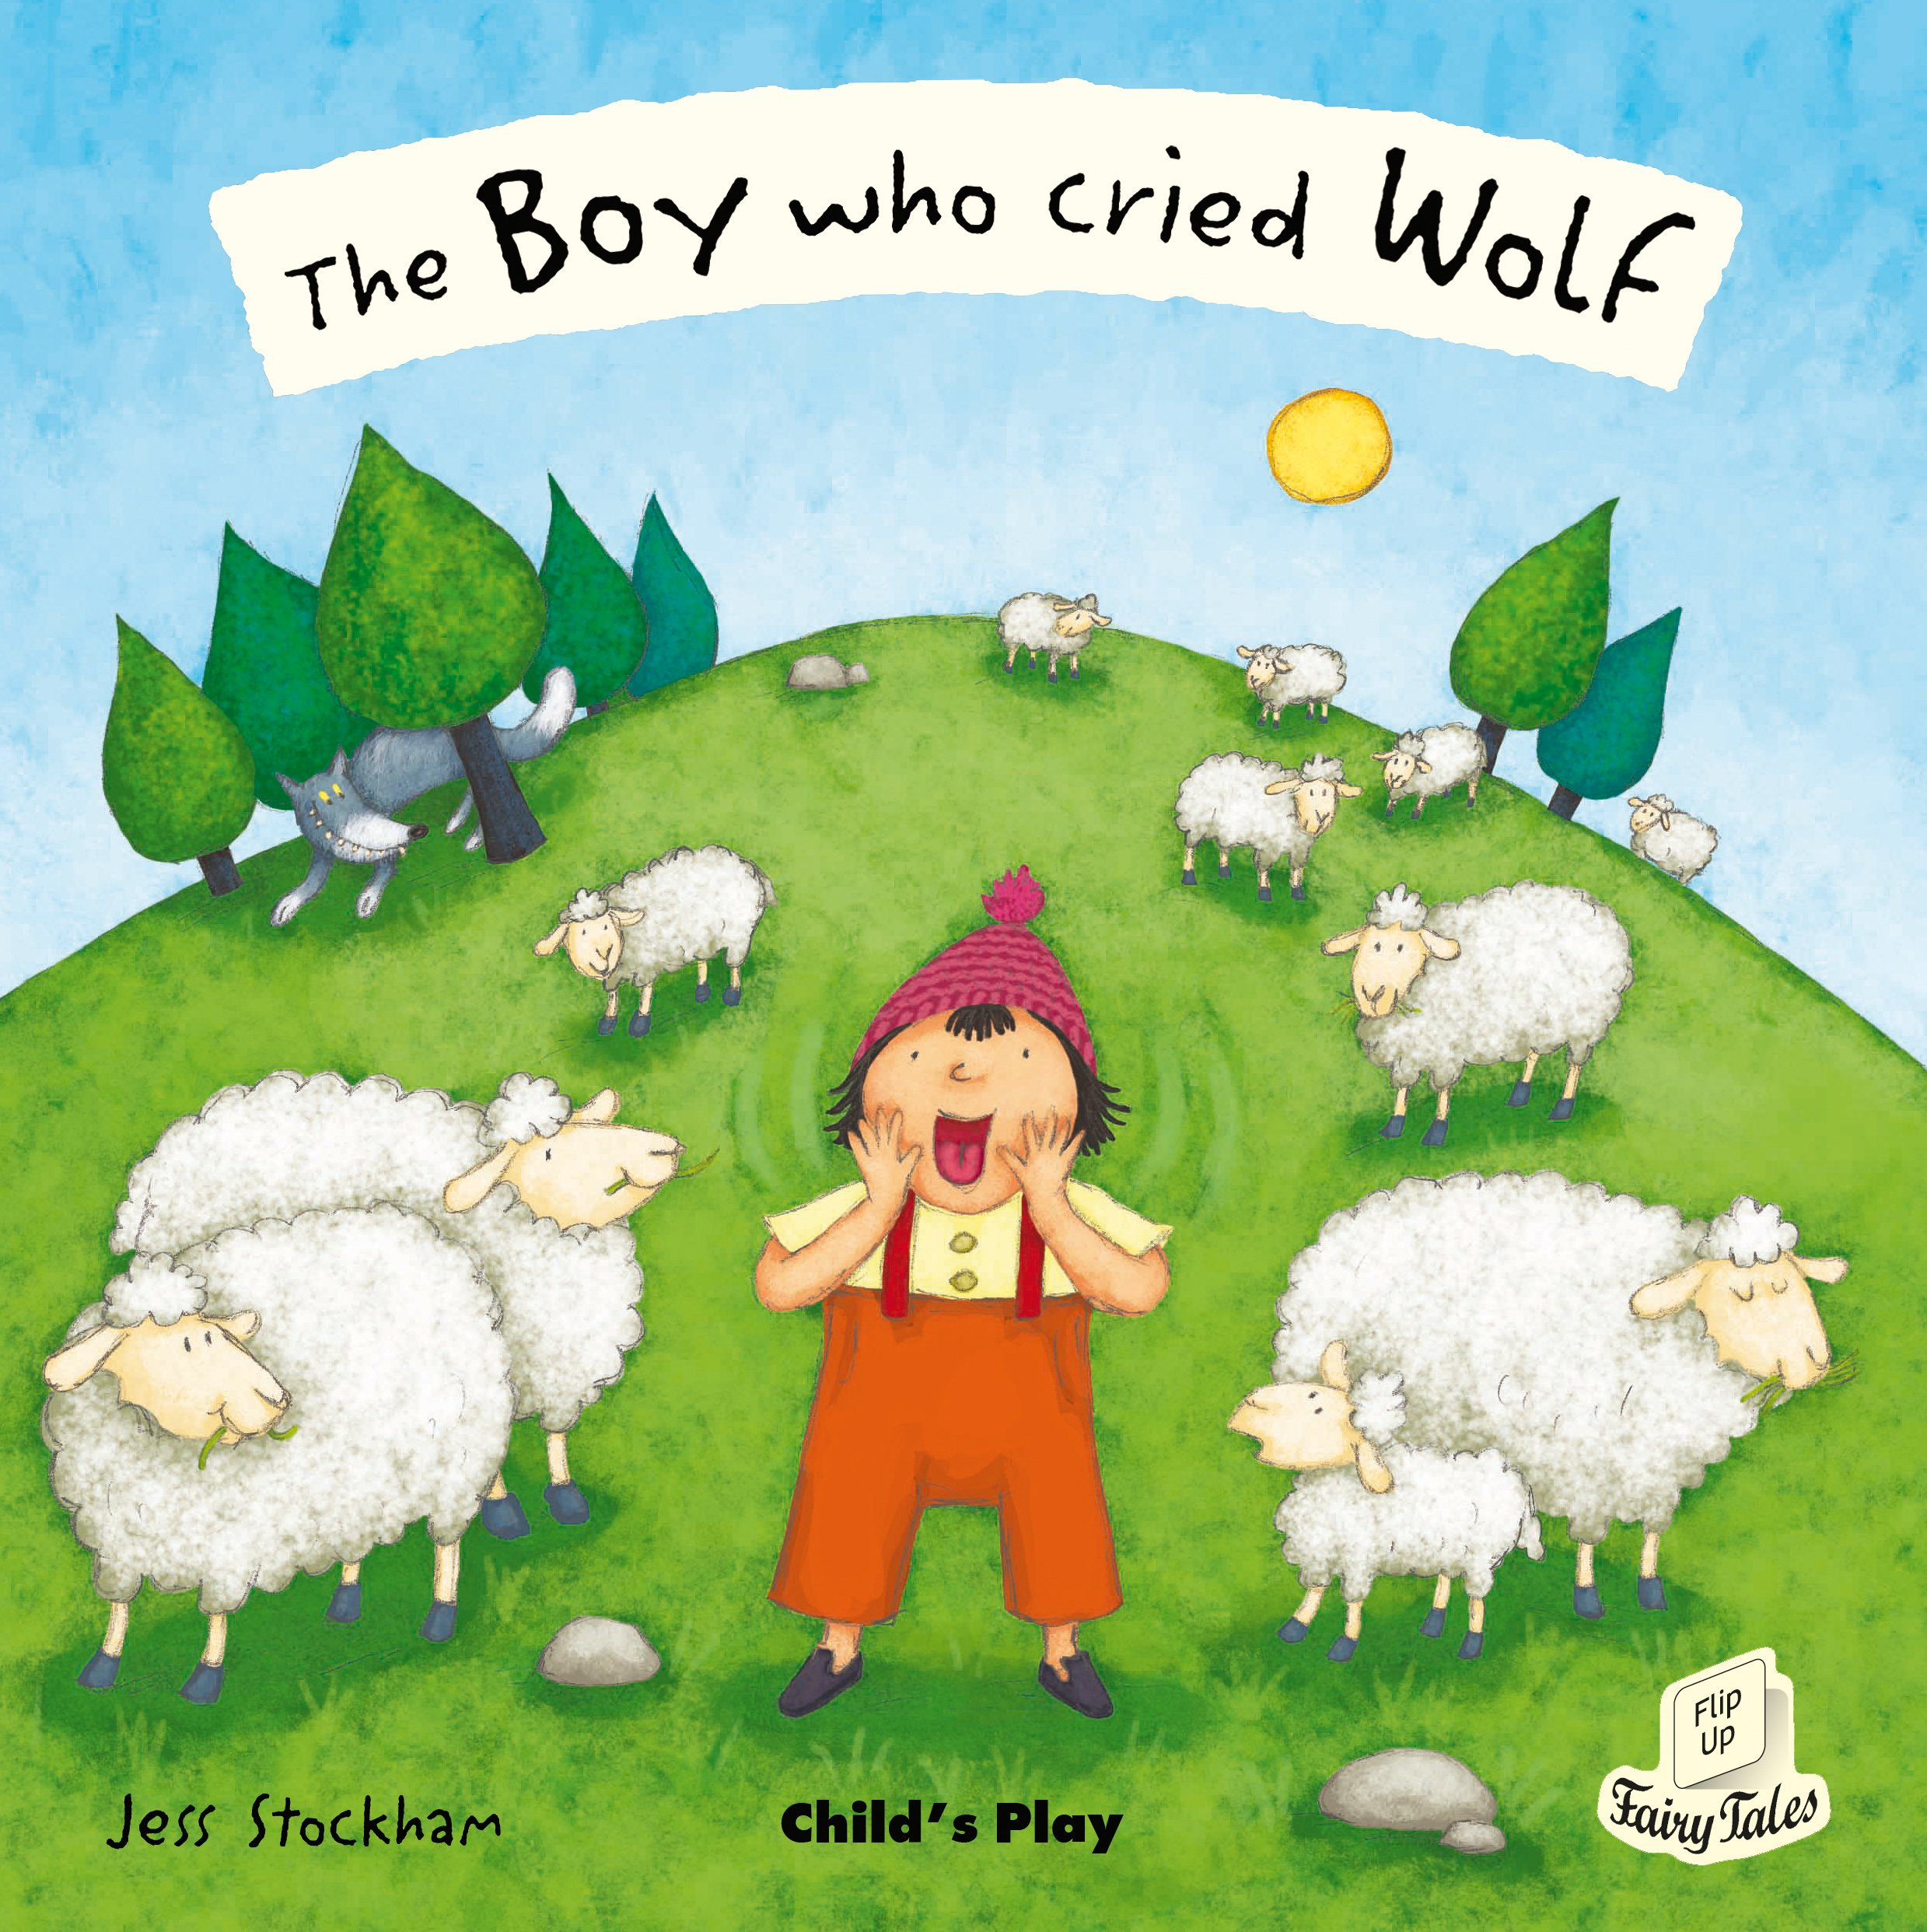 The Boy Who Cried Wolf (Flip-Up Fairy Tales): Child's Play